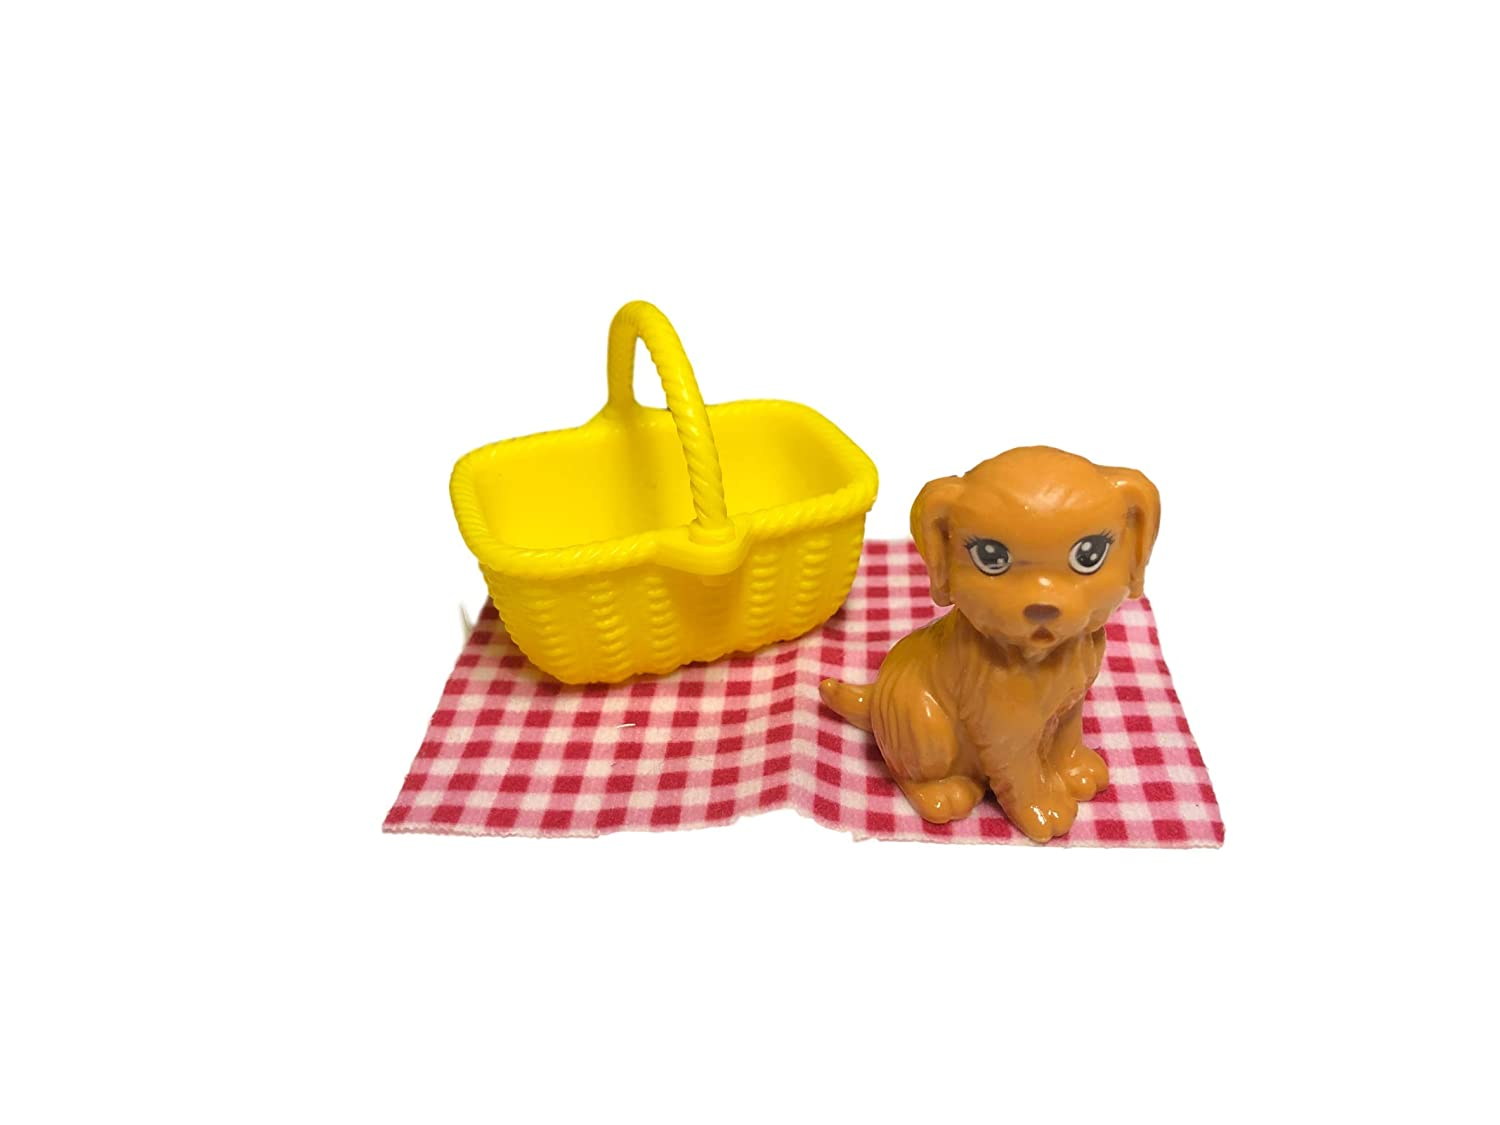 Barbie Camping Fun Accessory Pack Puppy Picnic 4 Pieces Mattel SG/_B01L3QXY1G/_US